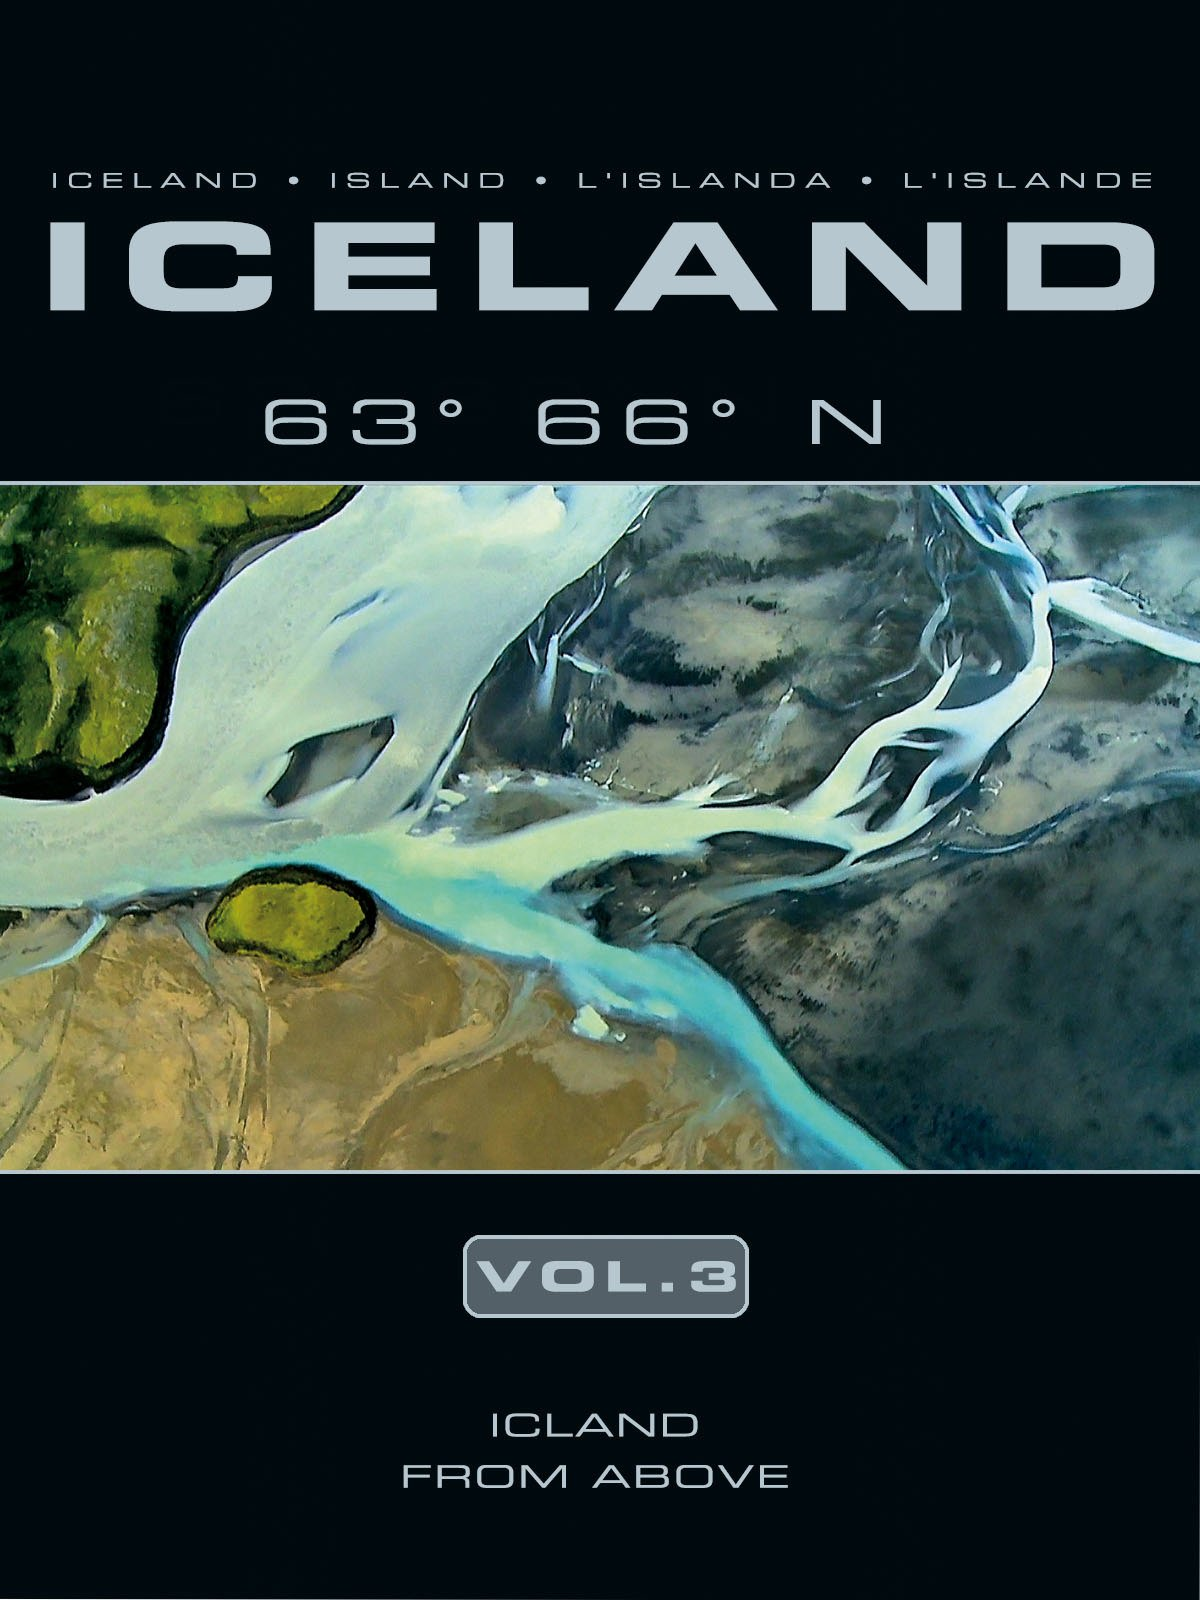 Iceland 63 66 N Vol. 3: Iceland from above